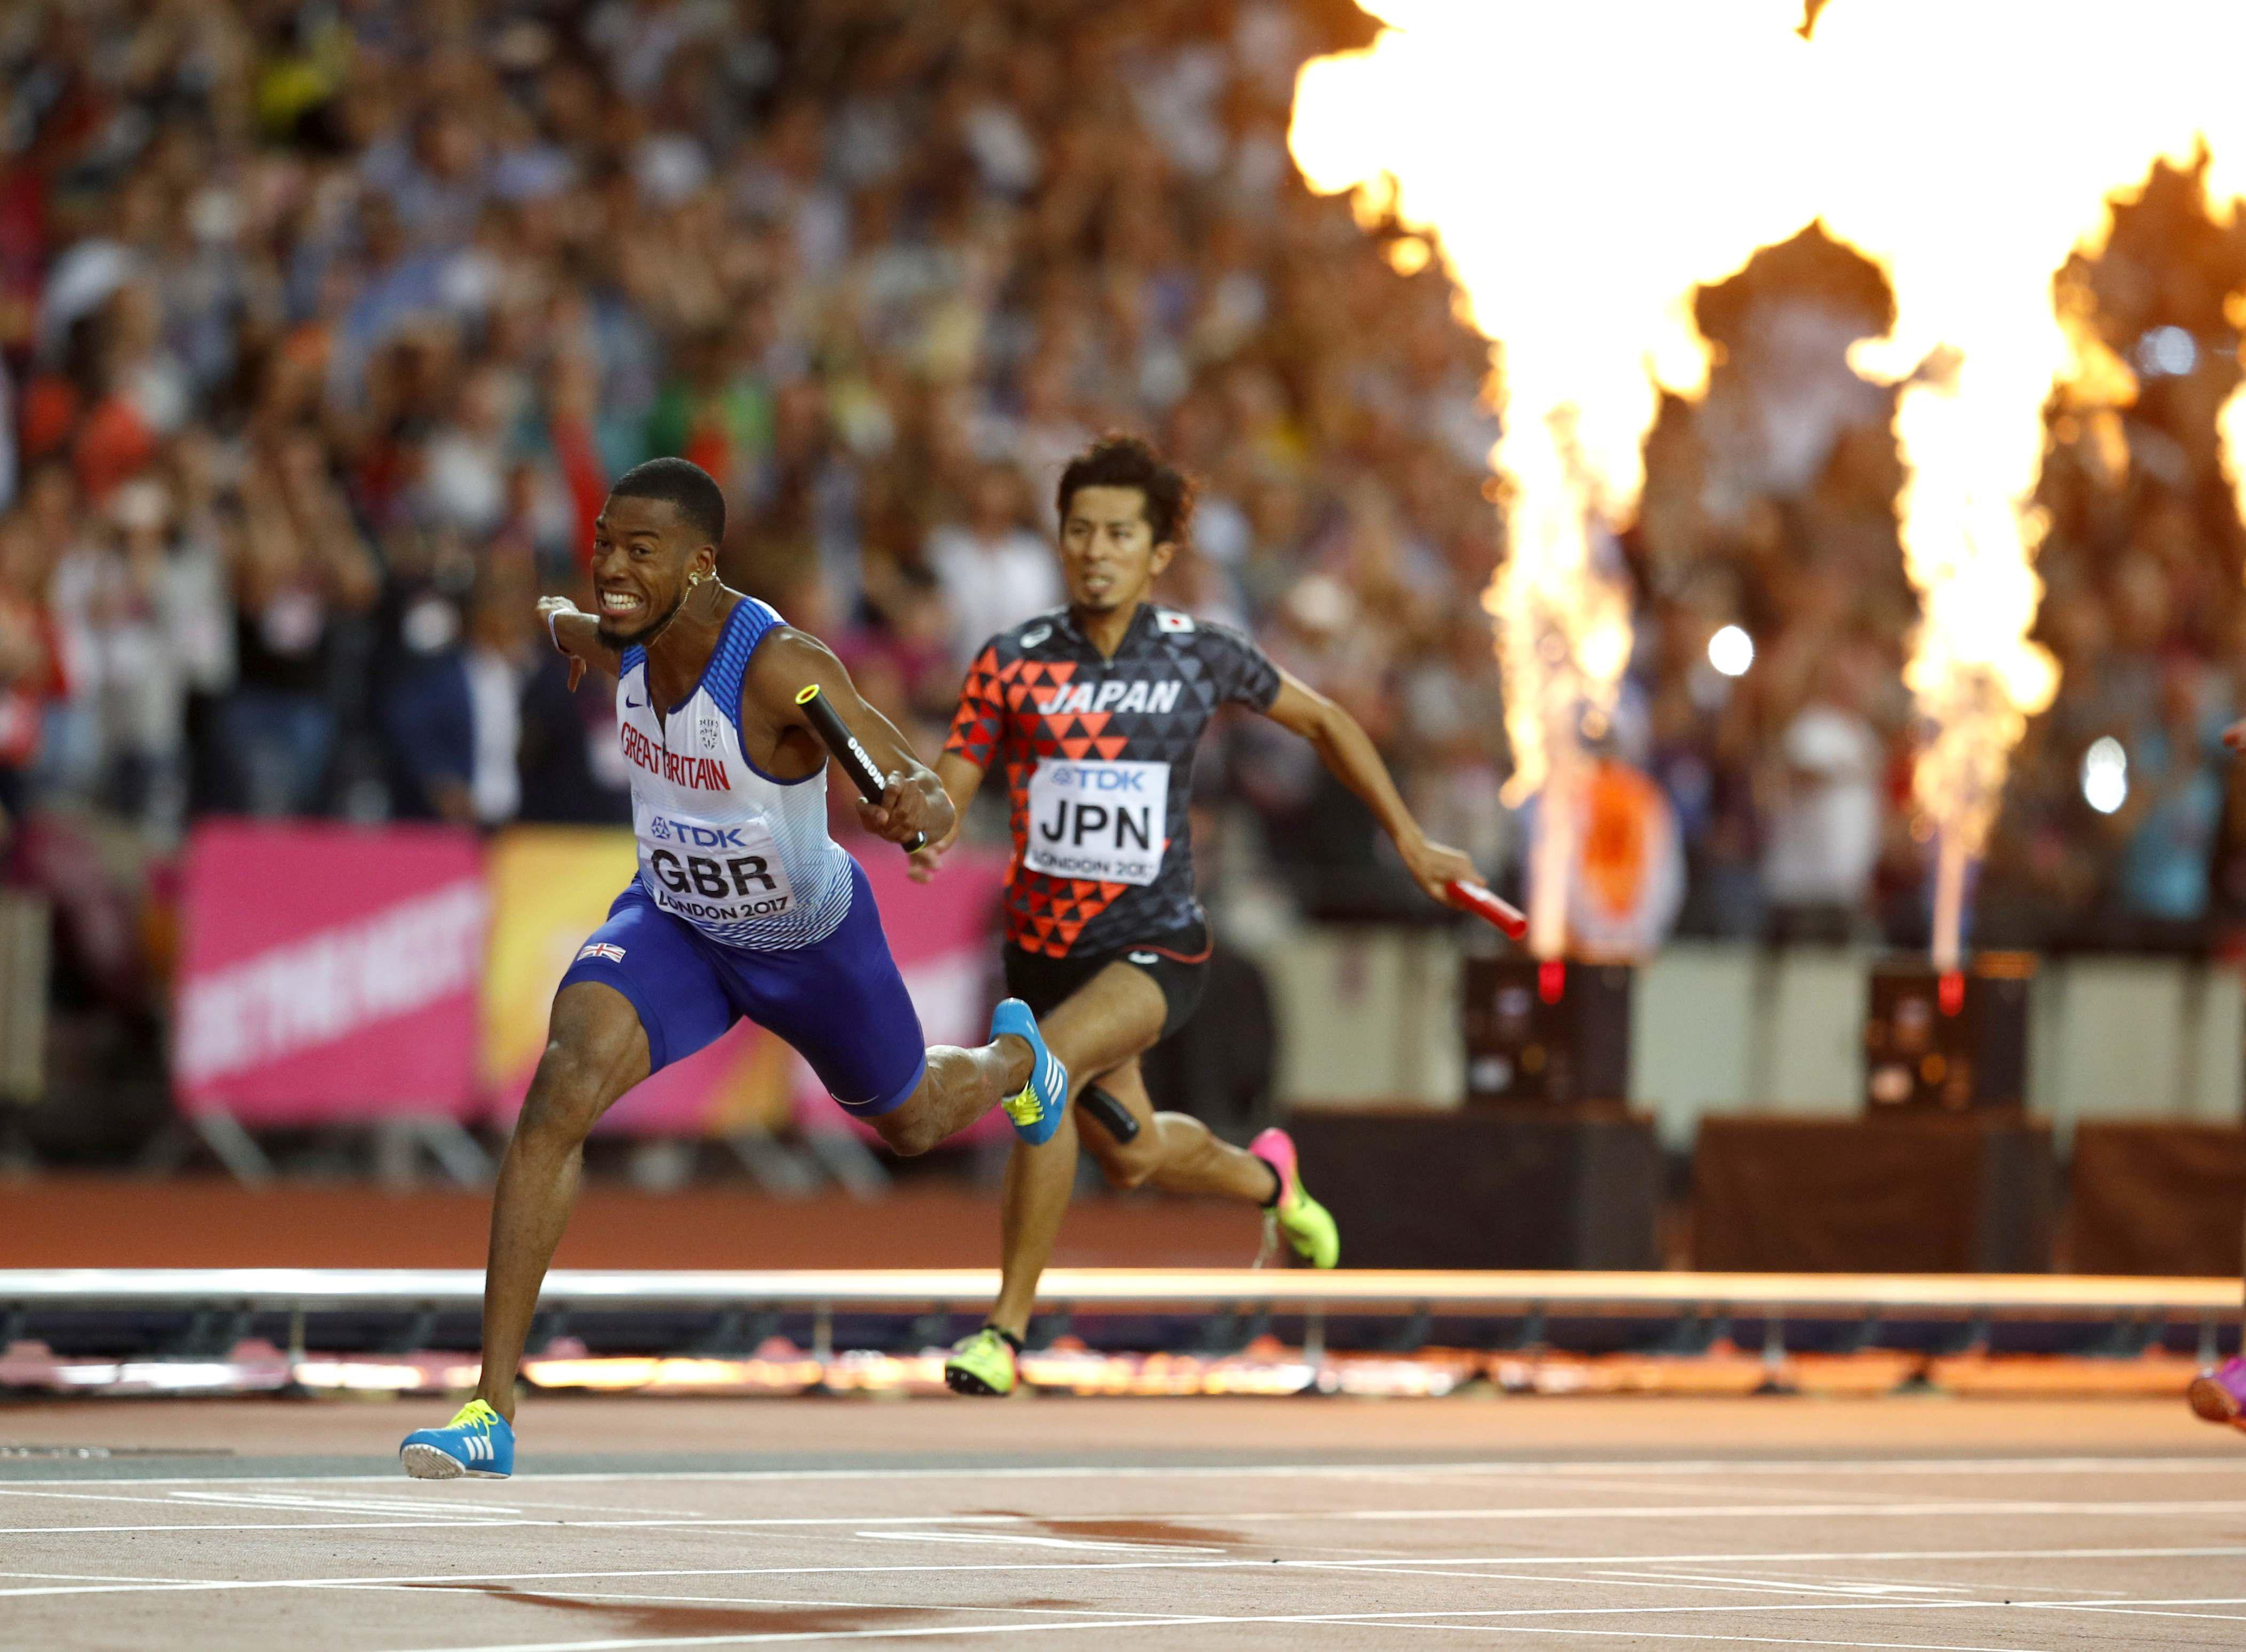 Nathaneel Mitchell-Blake roars to victory as GB claim a shock 4x100m relay gold